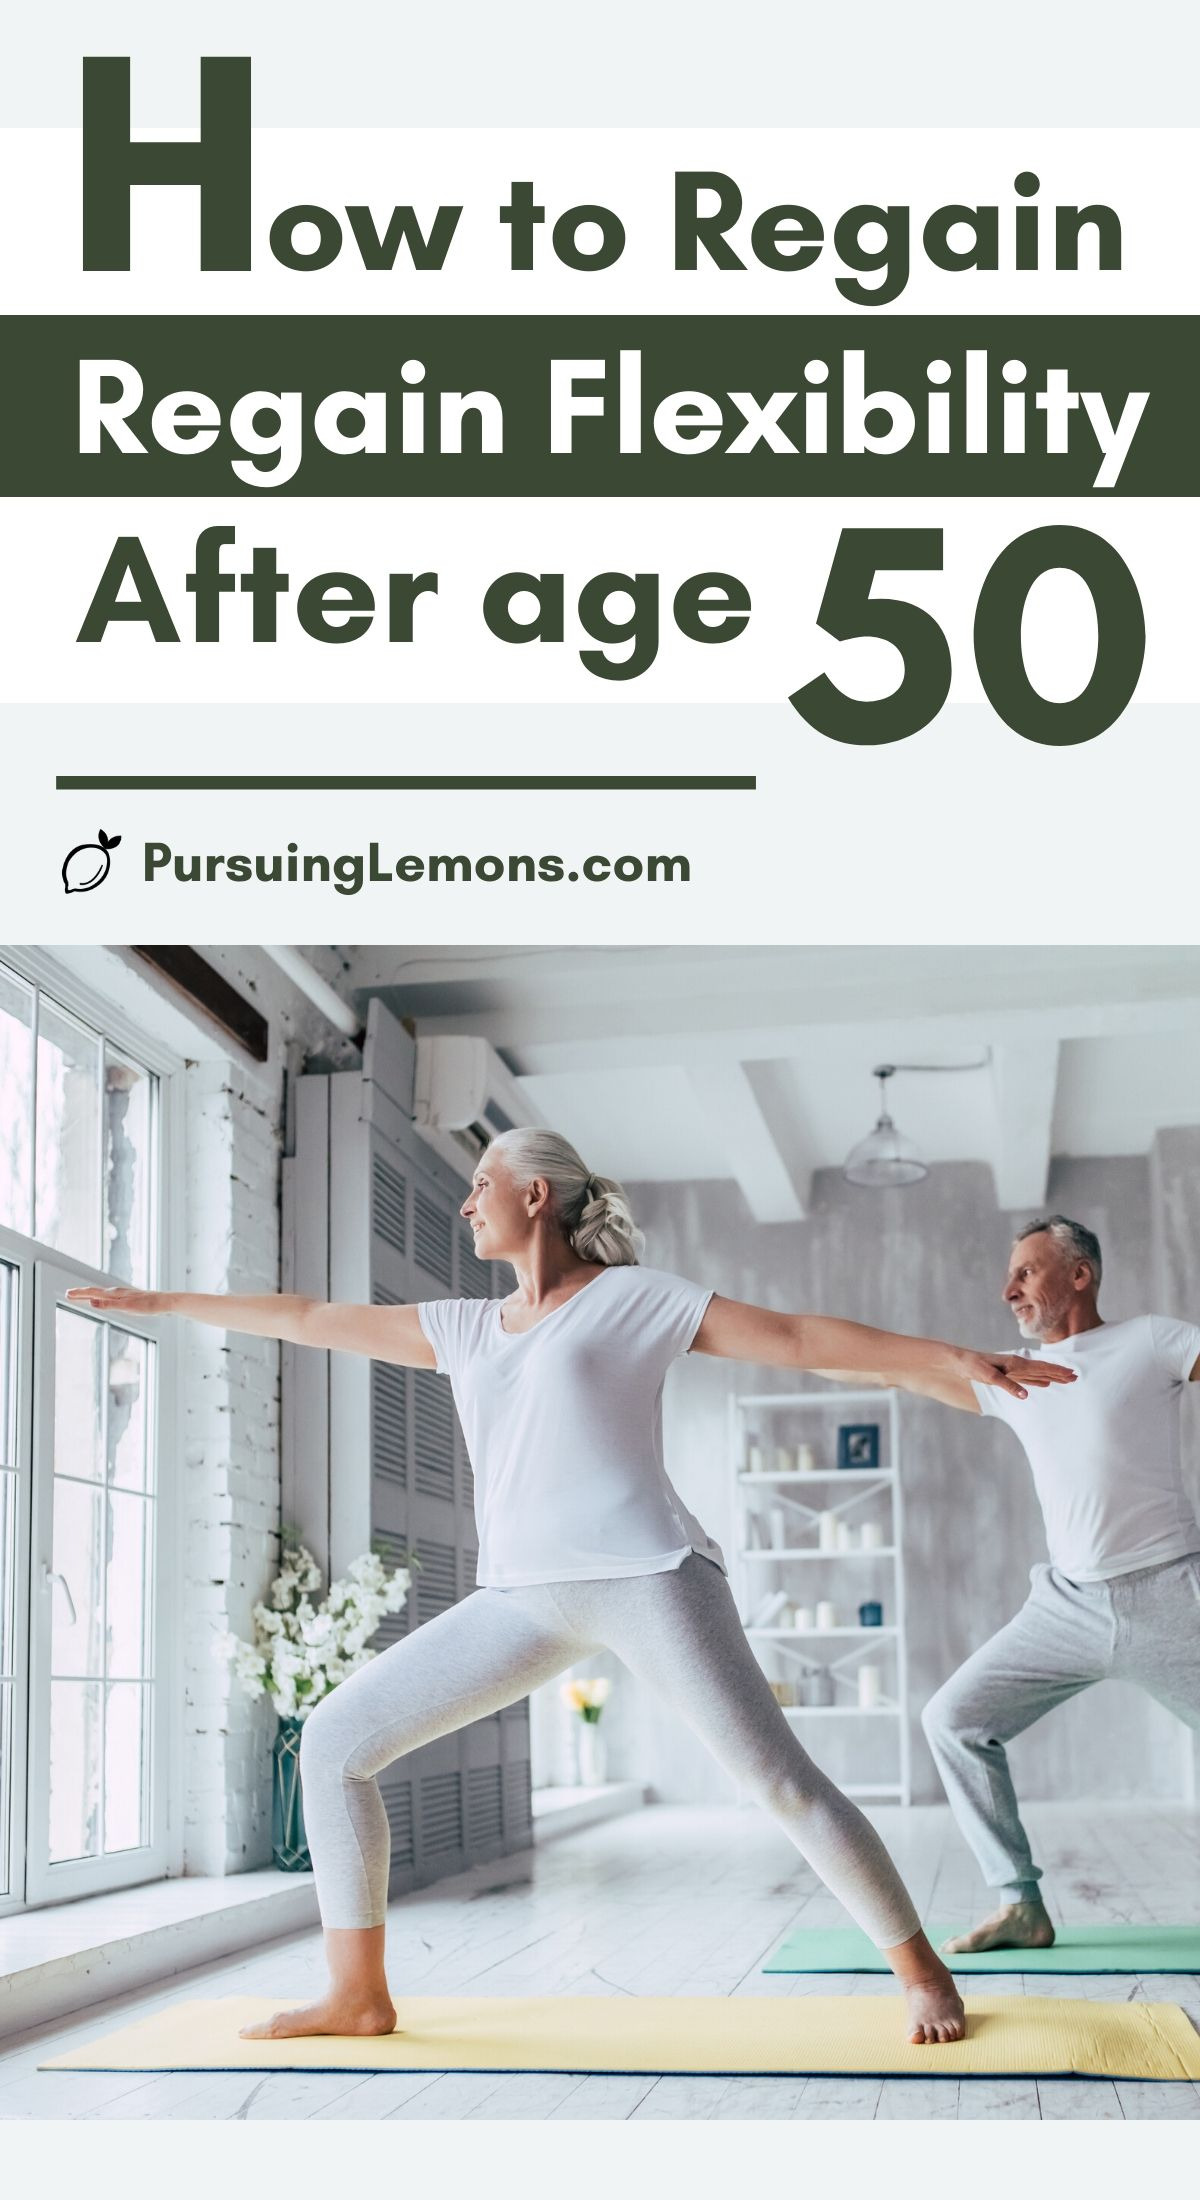 How To Regain Flexibility After 50   Don't let old age stop you from being flexible! Practice these yoga poses & yoga stretches daily to regain flexibility even if you're over 50. Start feeling like your younger self again! #yoga #flexibility #yogaposes #regainflexibility